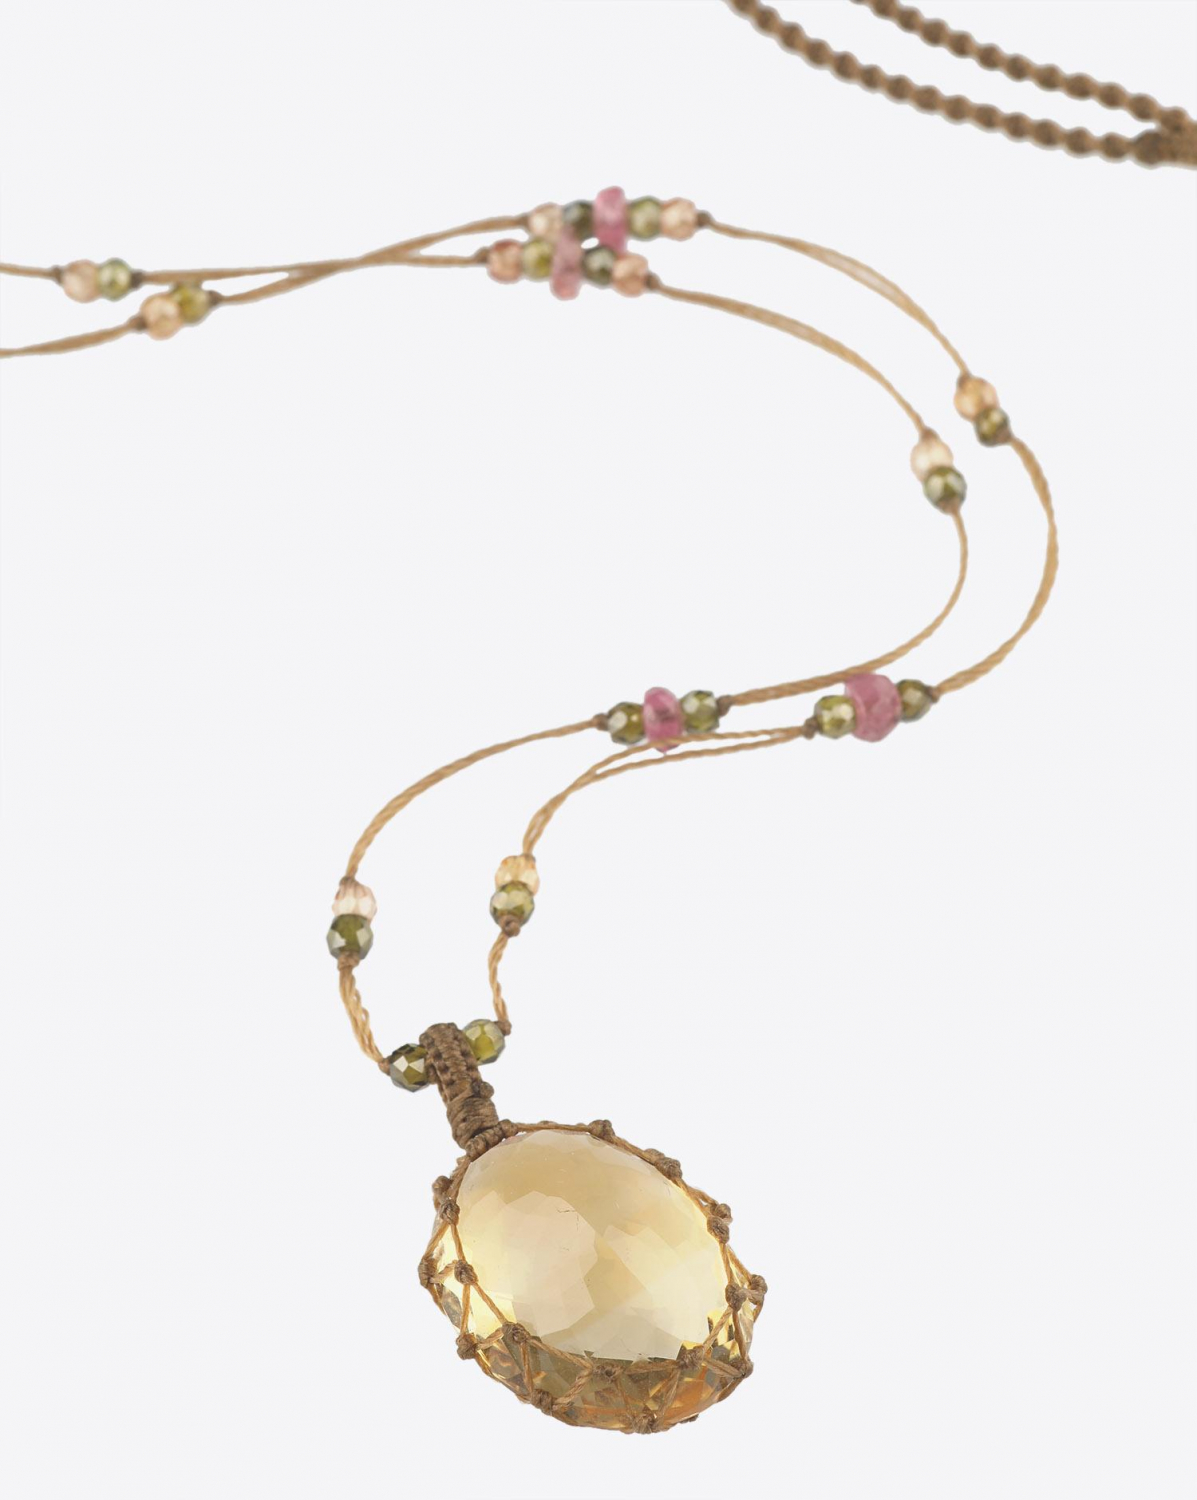 Sharing Collier Court TIBETAN Sur Cordon Beige - Citrine